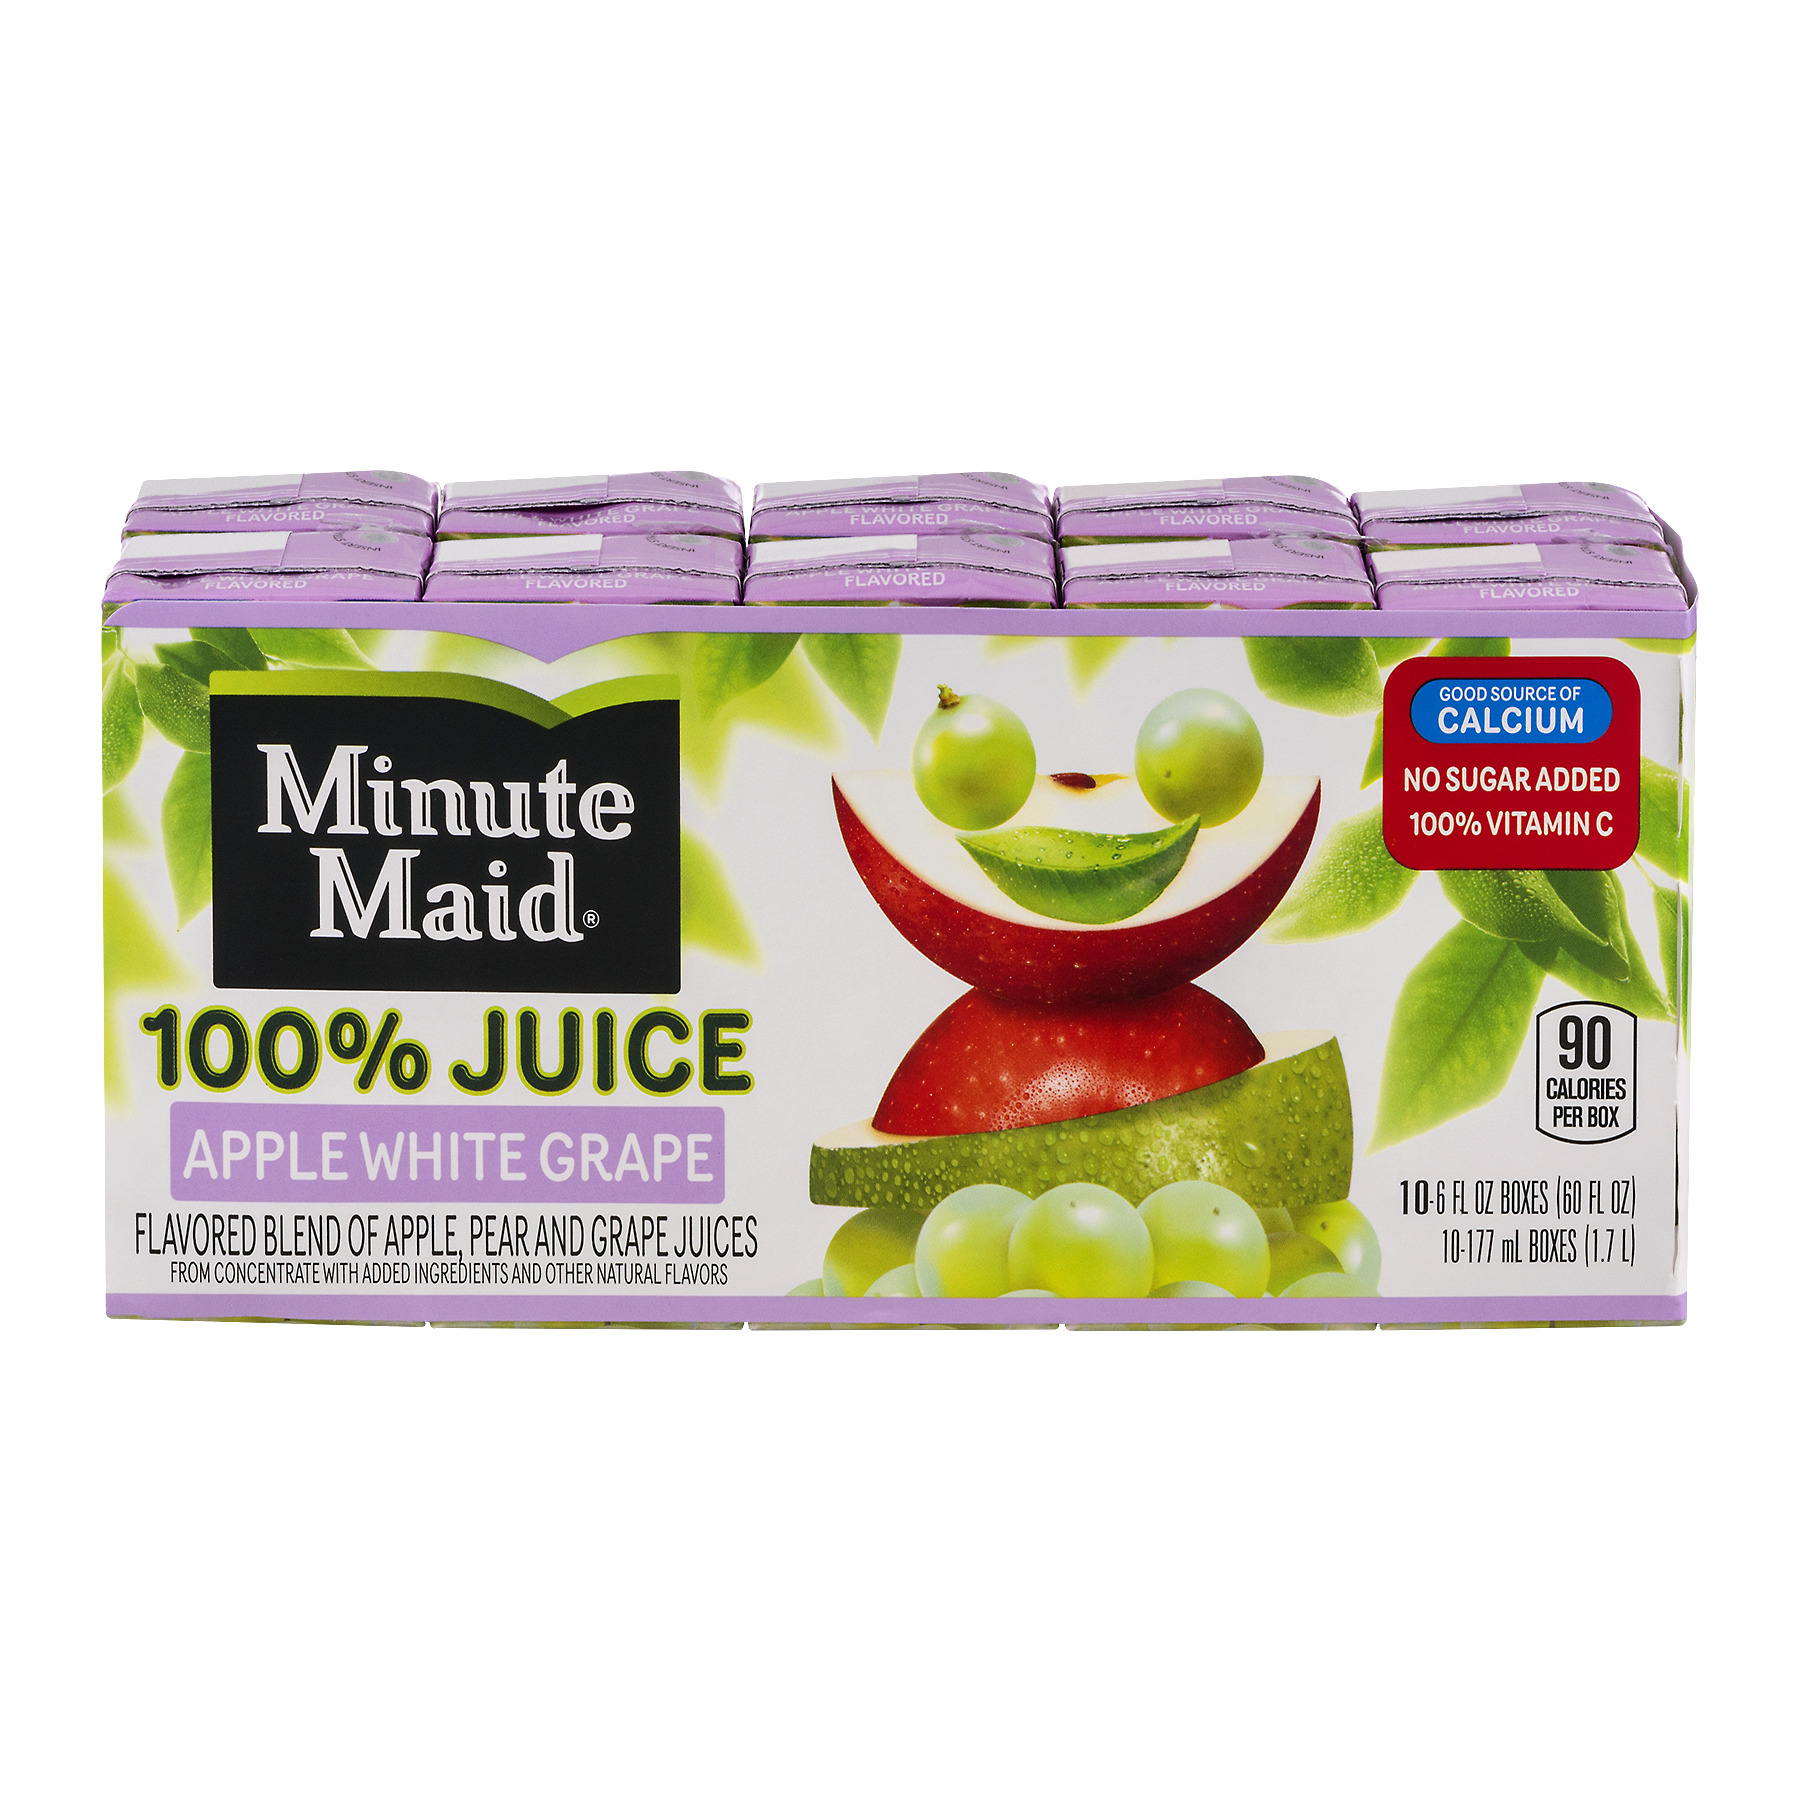 Minute Maid 100% Juice, Apple White Grape, 6 Fl Oz, 10 Count